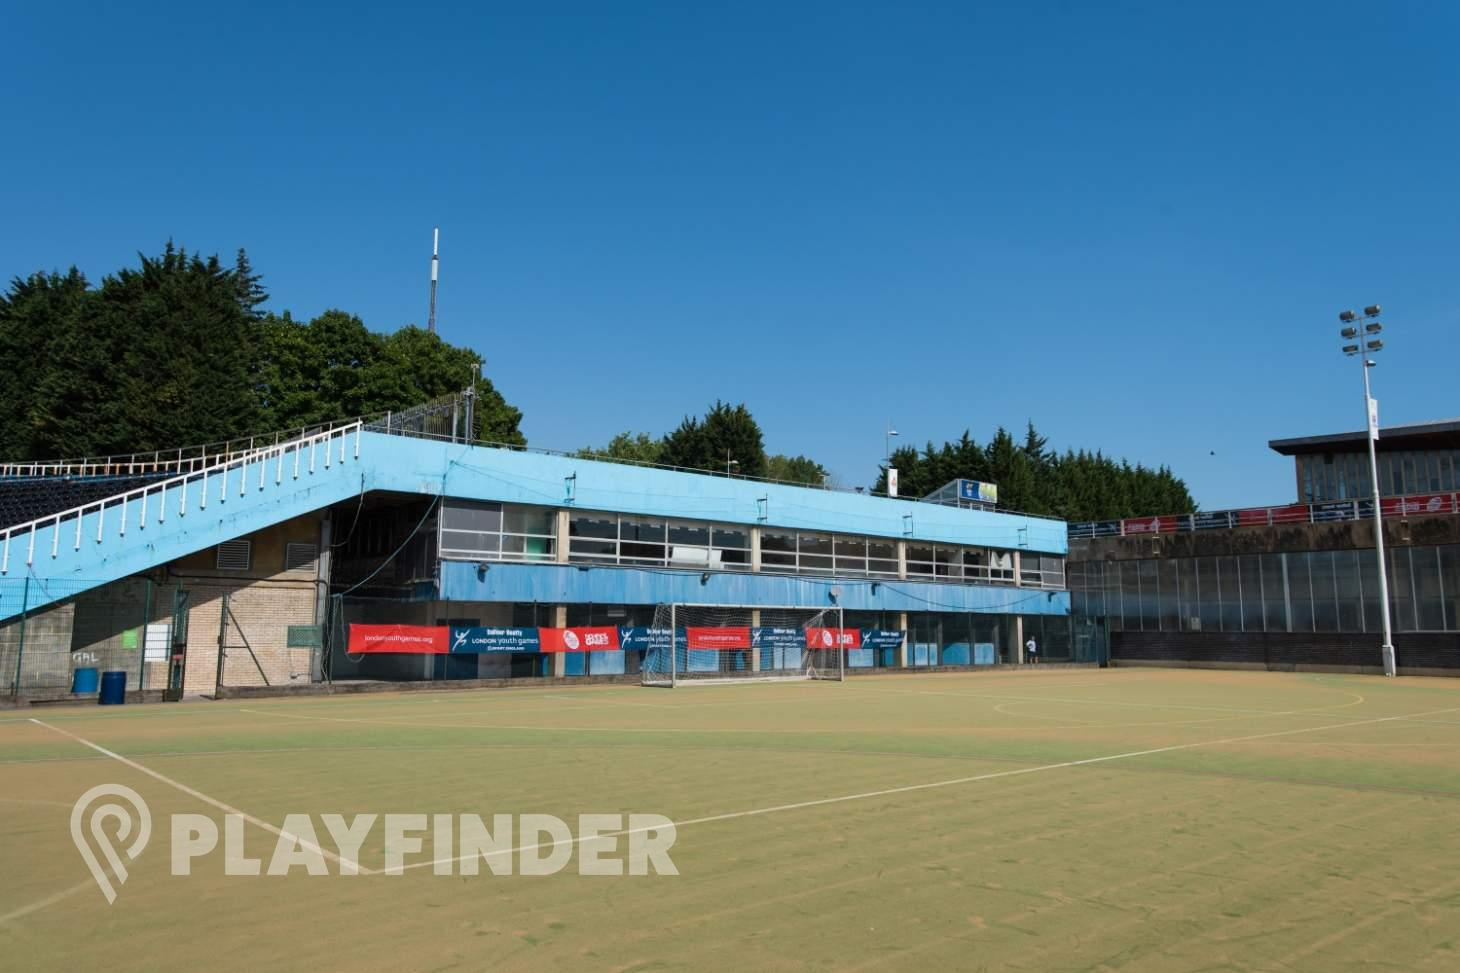 Crystal Palace National Sports Centre 11 a side | Astroturf football pitch